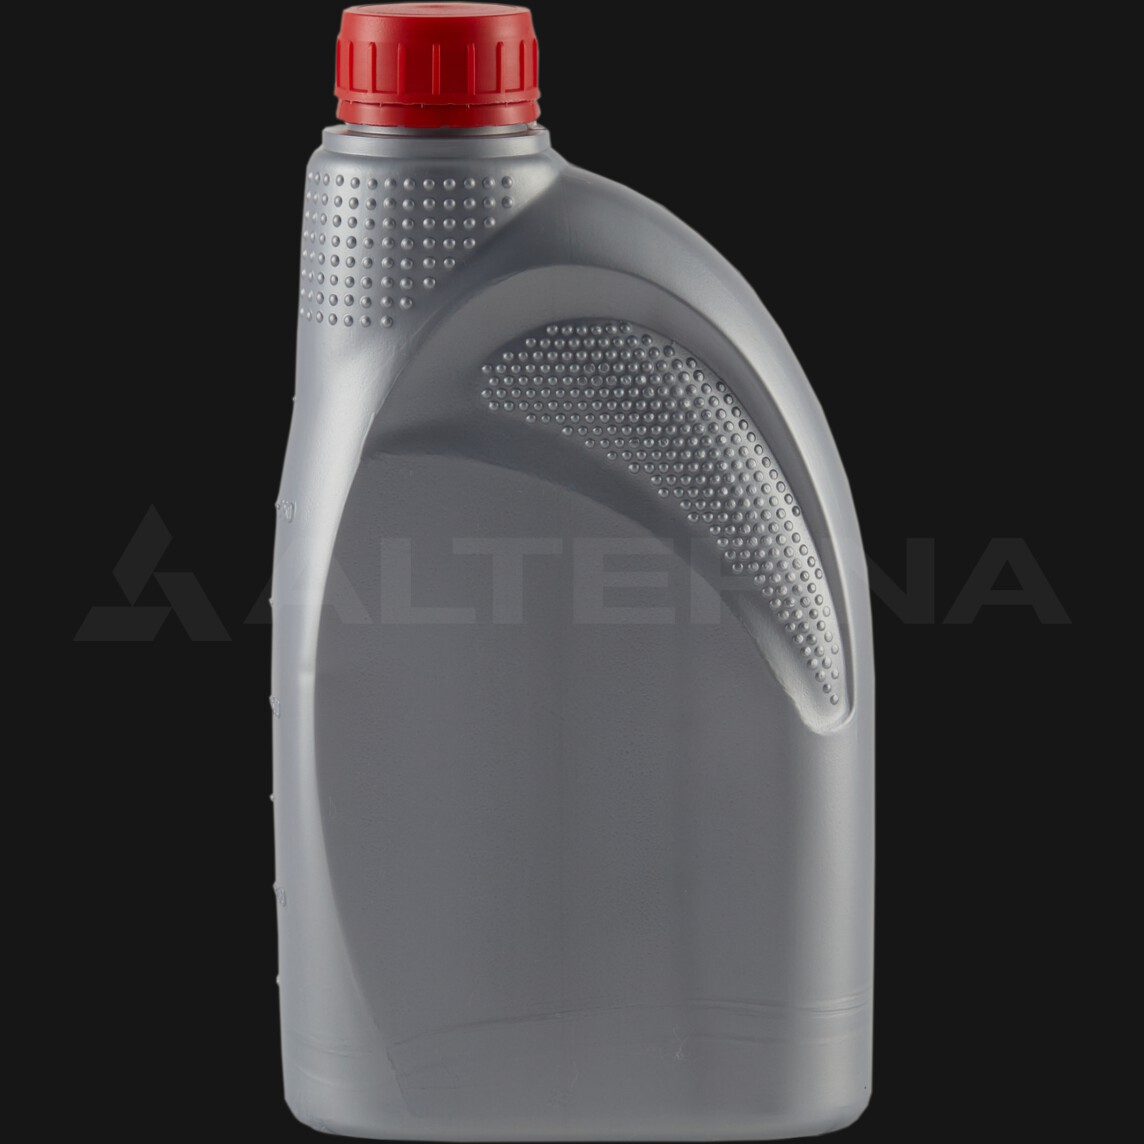 1000 ml HDPE Motor Oil Bottle with 38 mm Alu. Seal Secure Cap